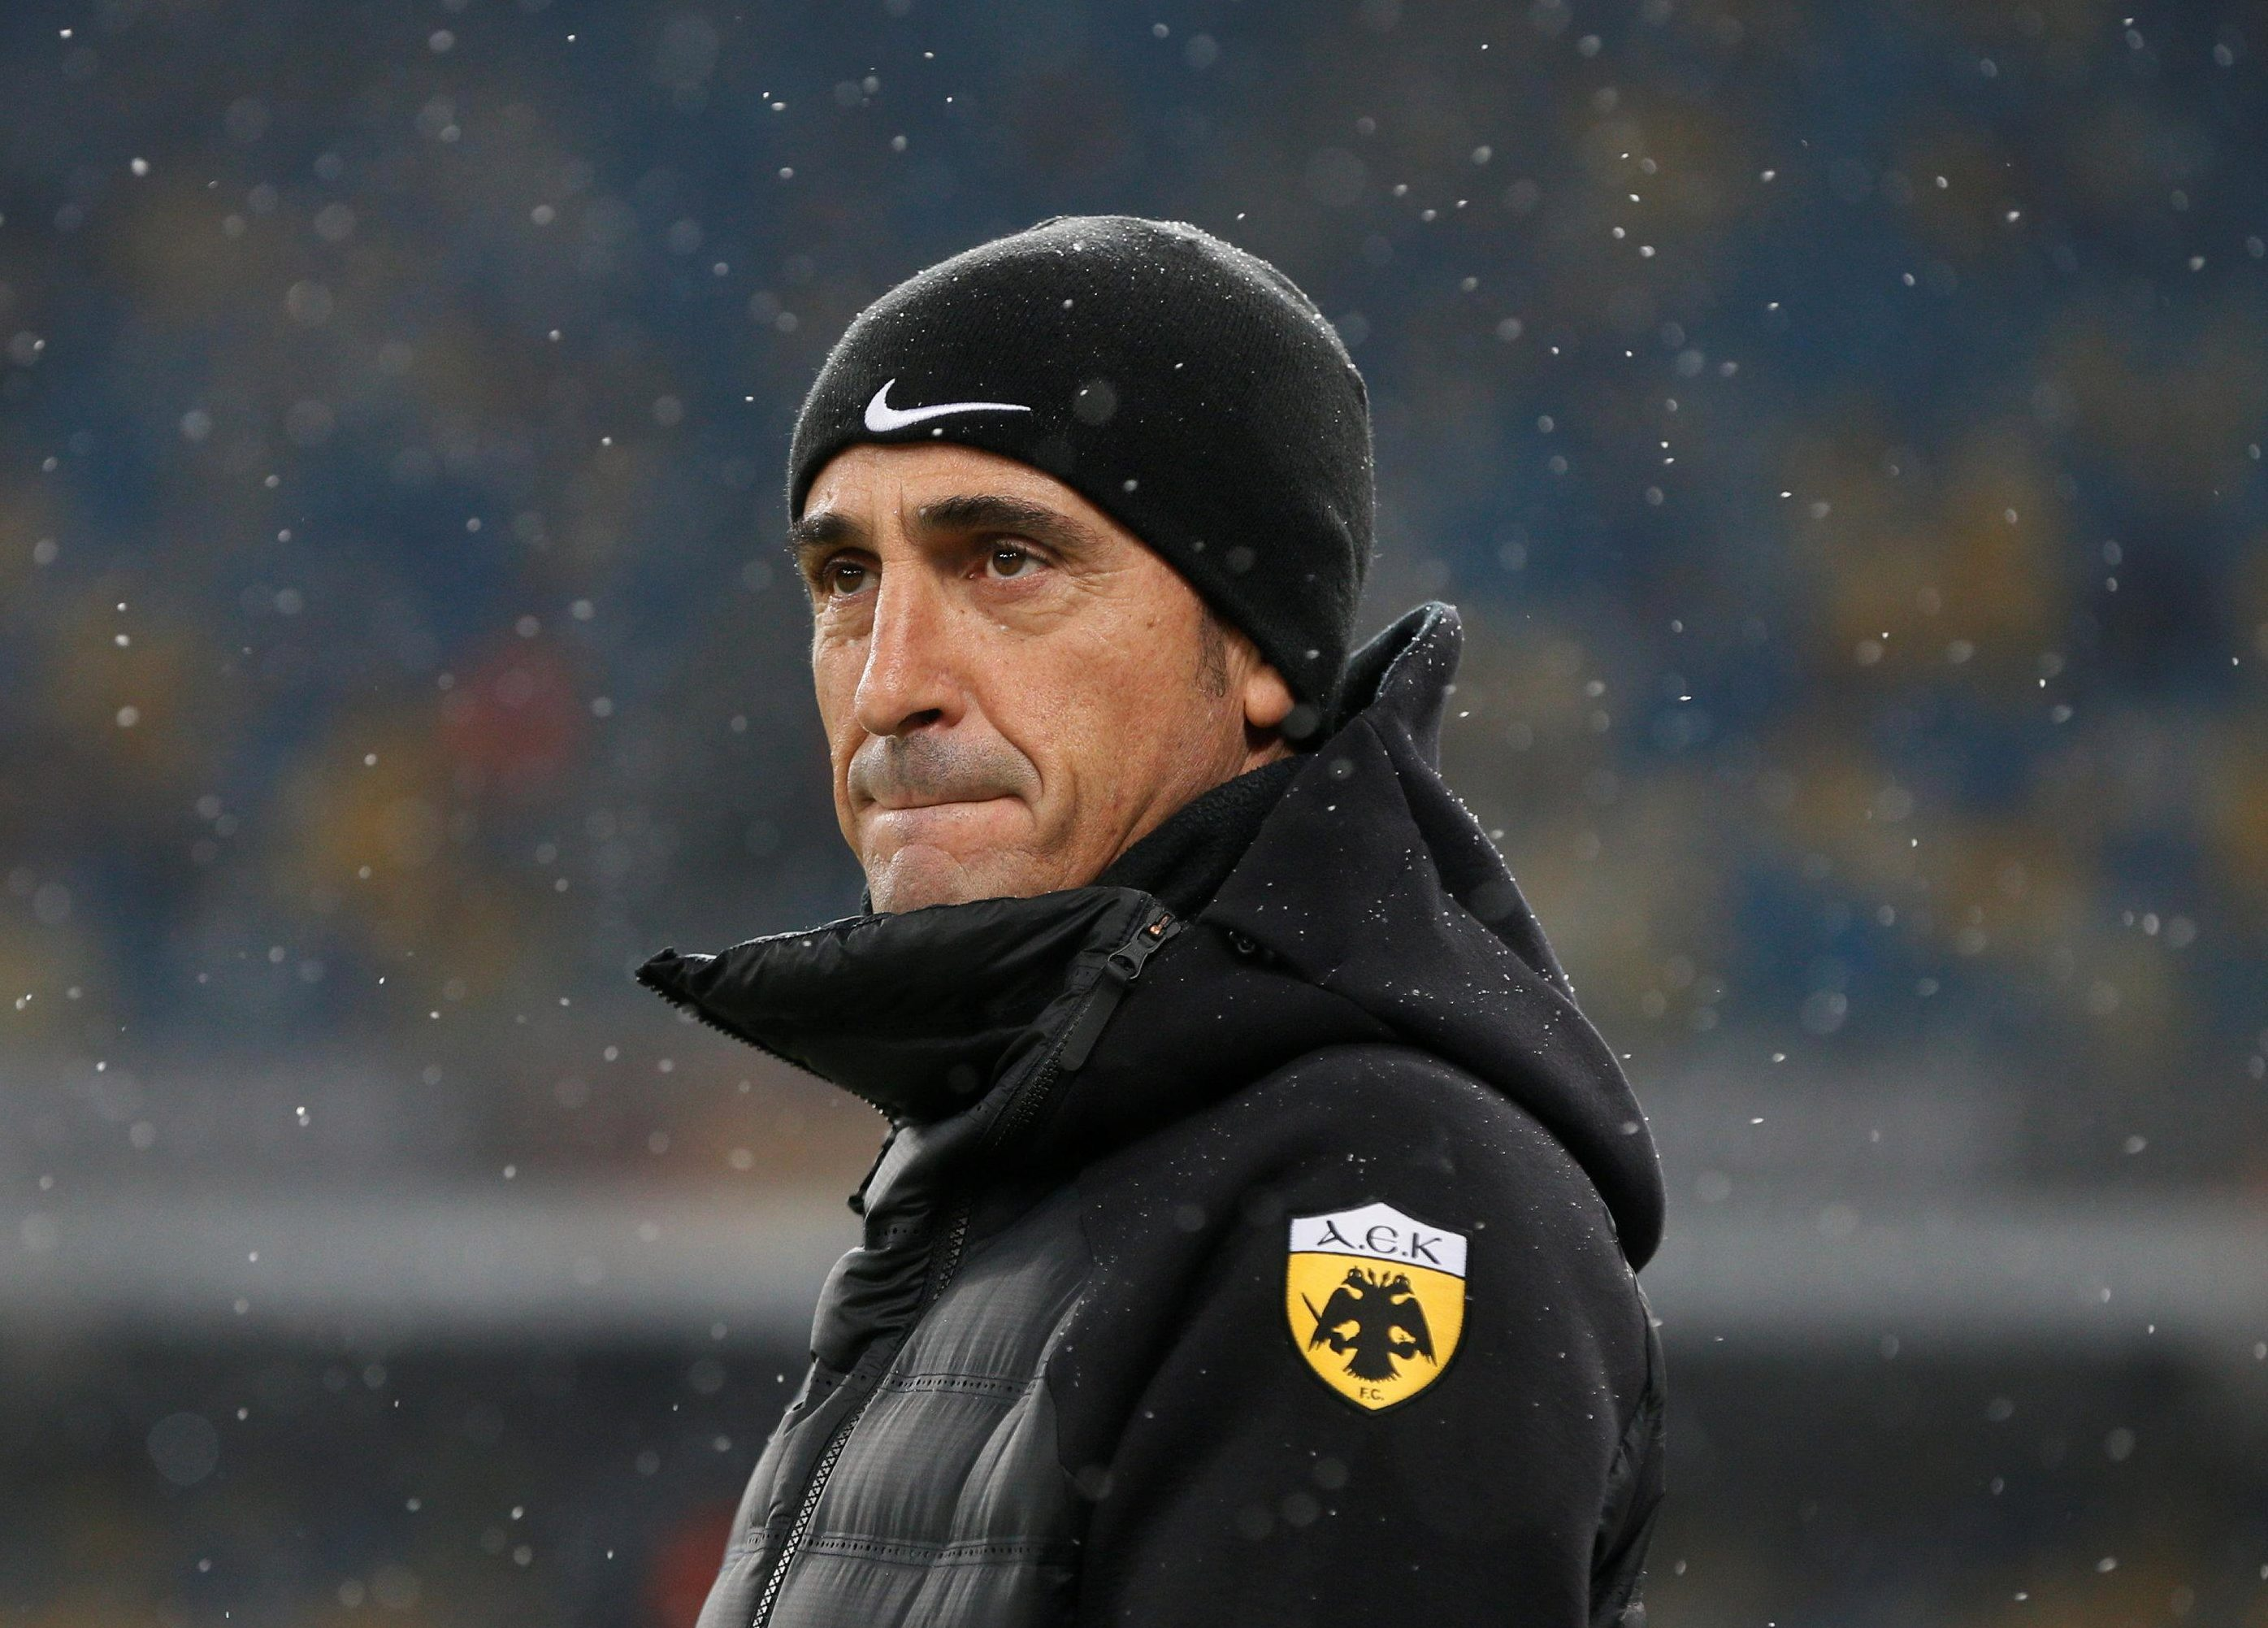 AEK are four points clear at the top of the table after 24 games